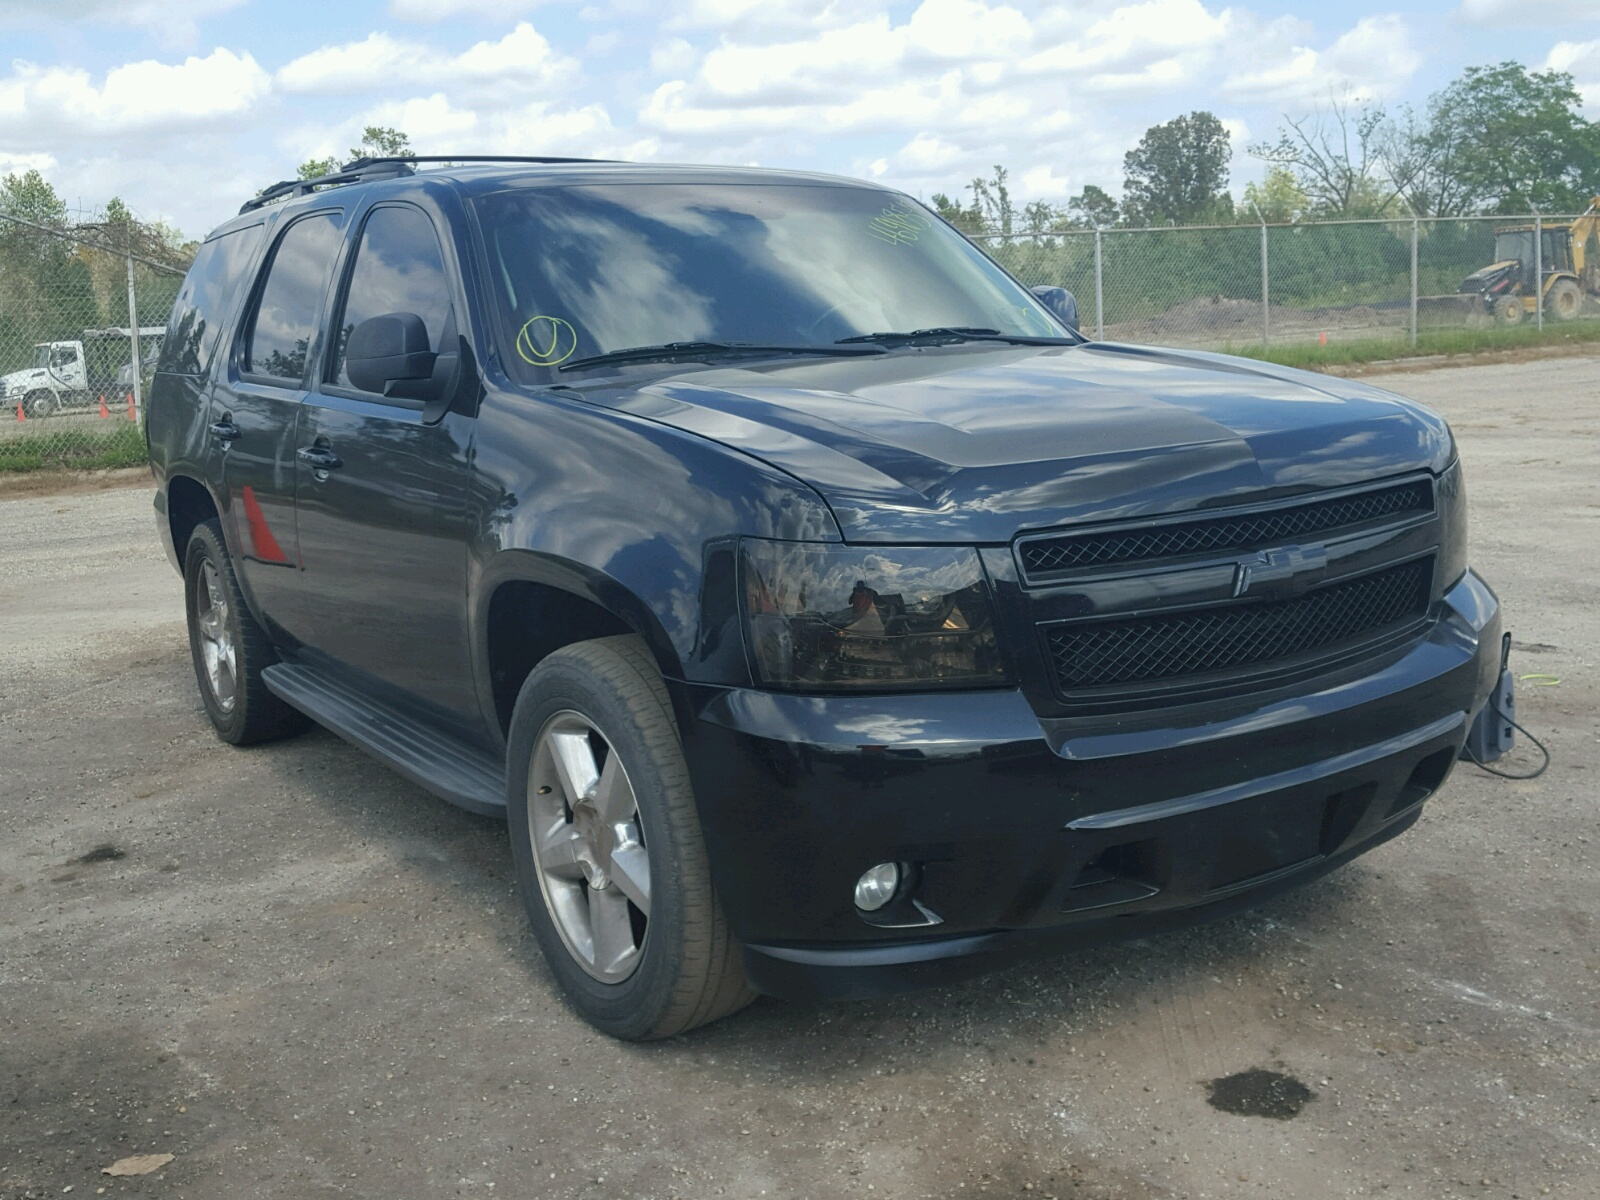 Salvage 2009 Chevrolet TAHOE C150 for sale